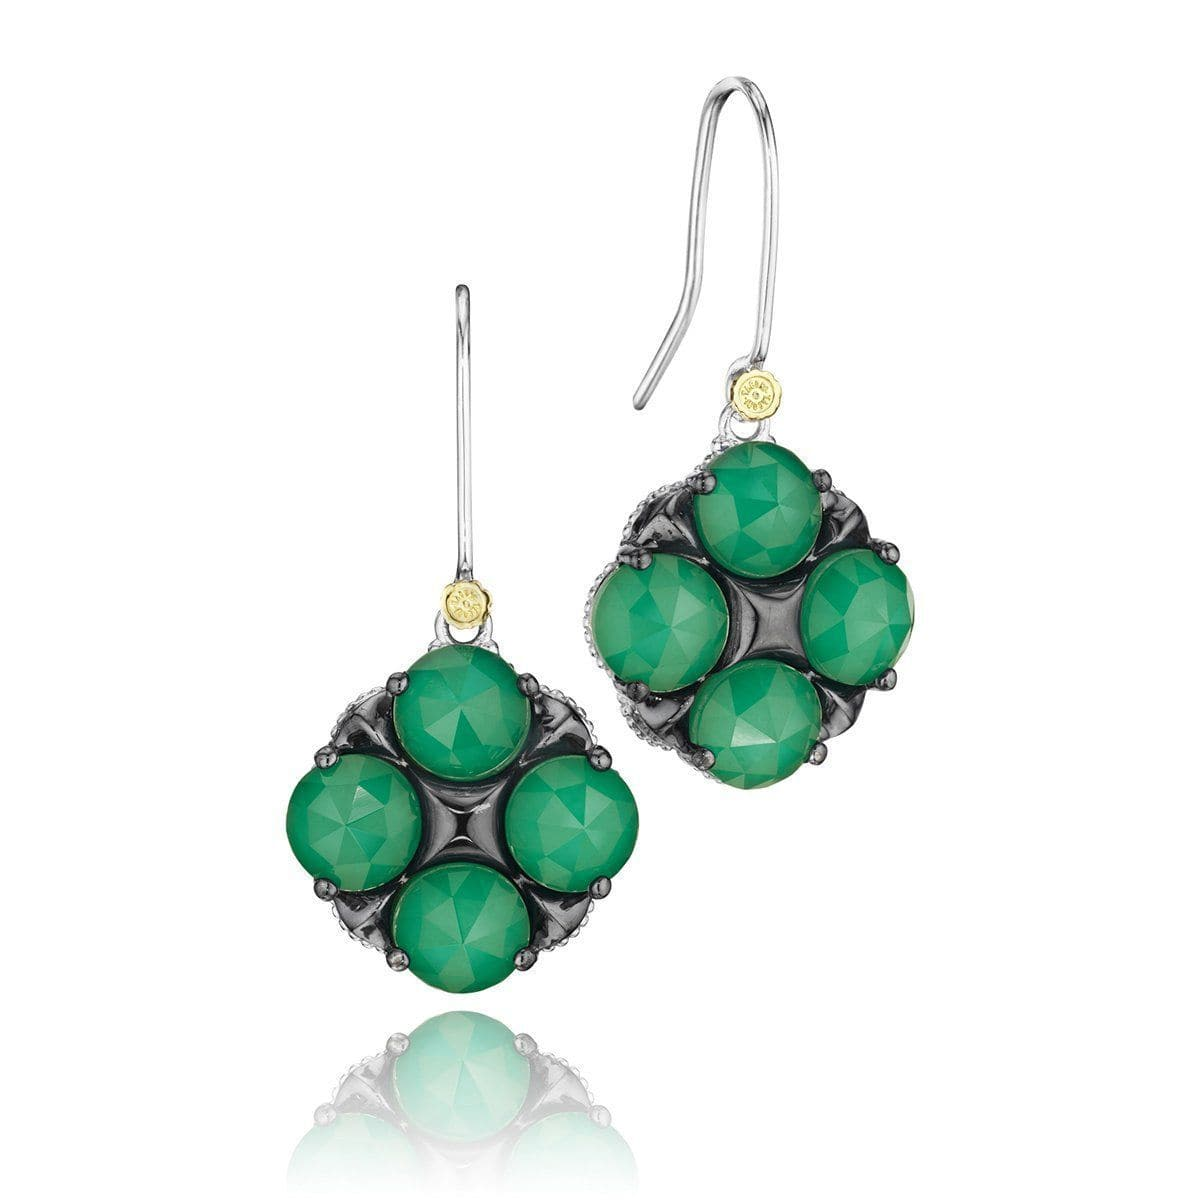 Silver Clear Quartz Over Green Onyx Earrings - SE16627-Tacori-Renee Taylor Gallery